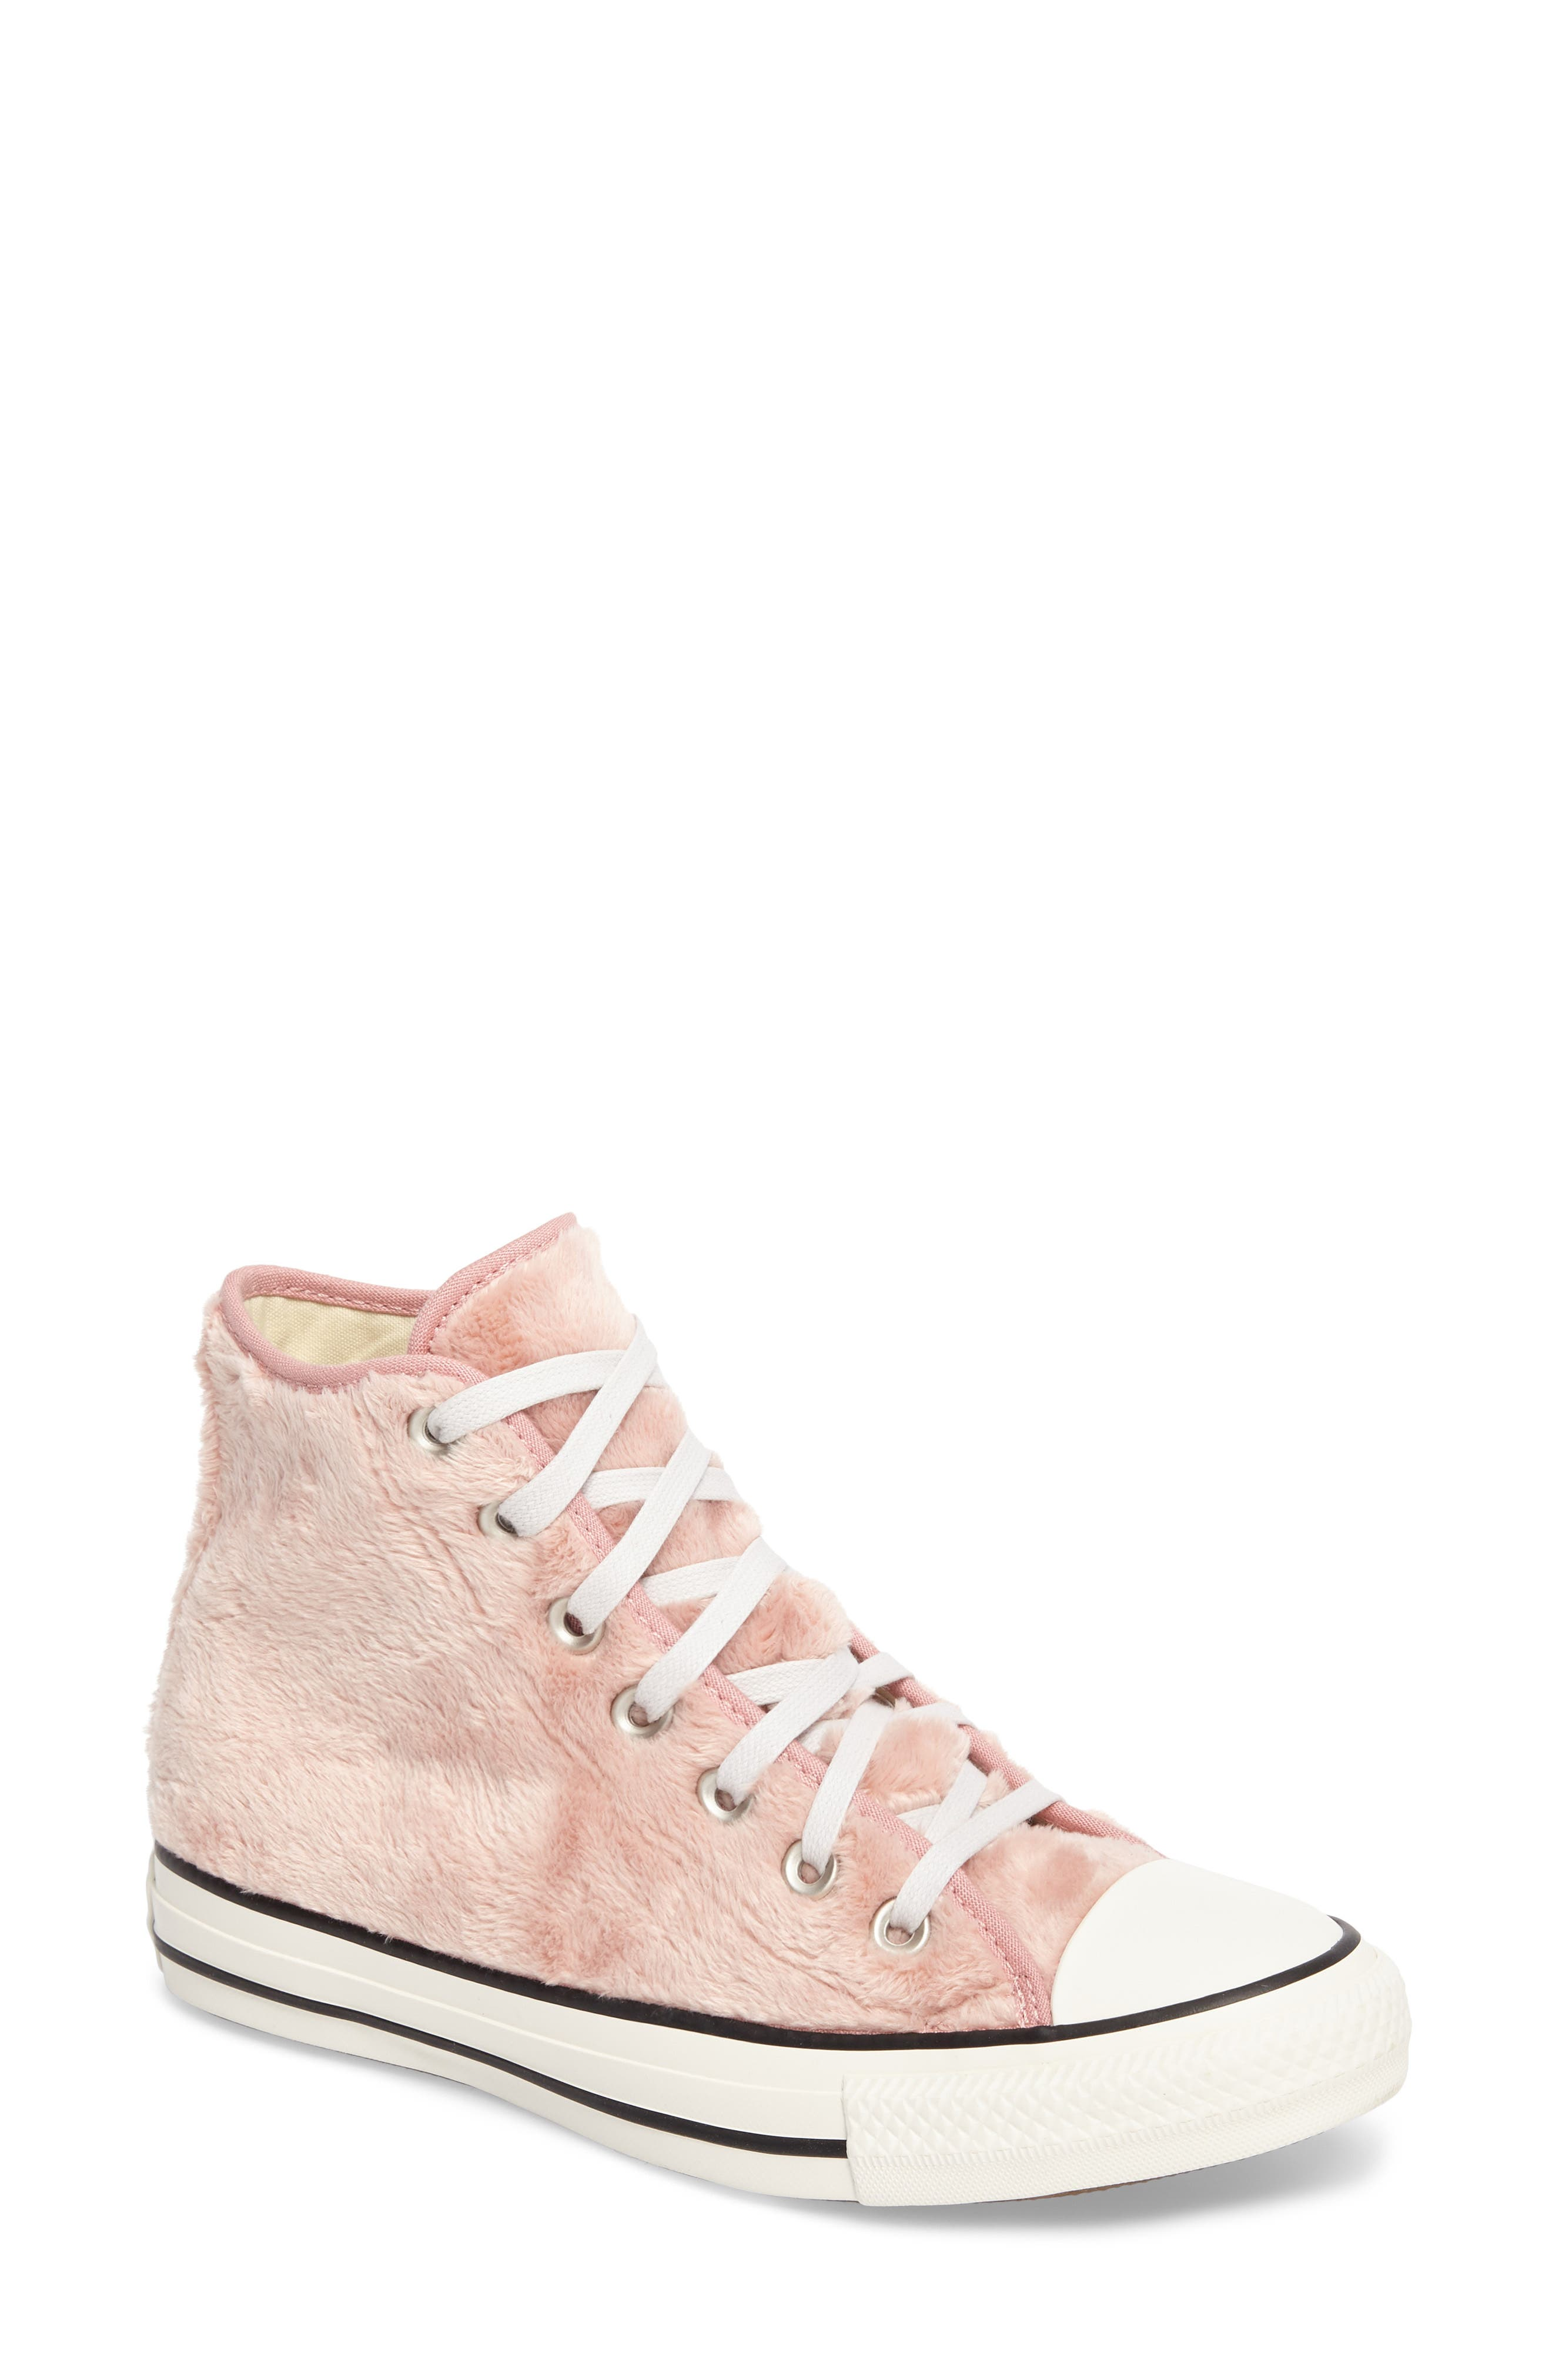 Main Image - Converse Chuck Taylor® All Star® Faux Fur High Top Sneakers (Women)